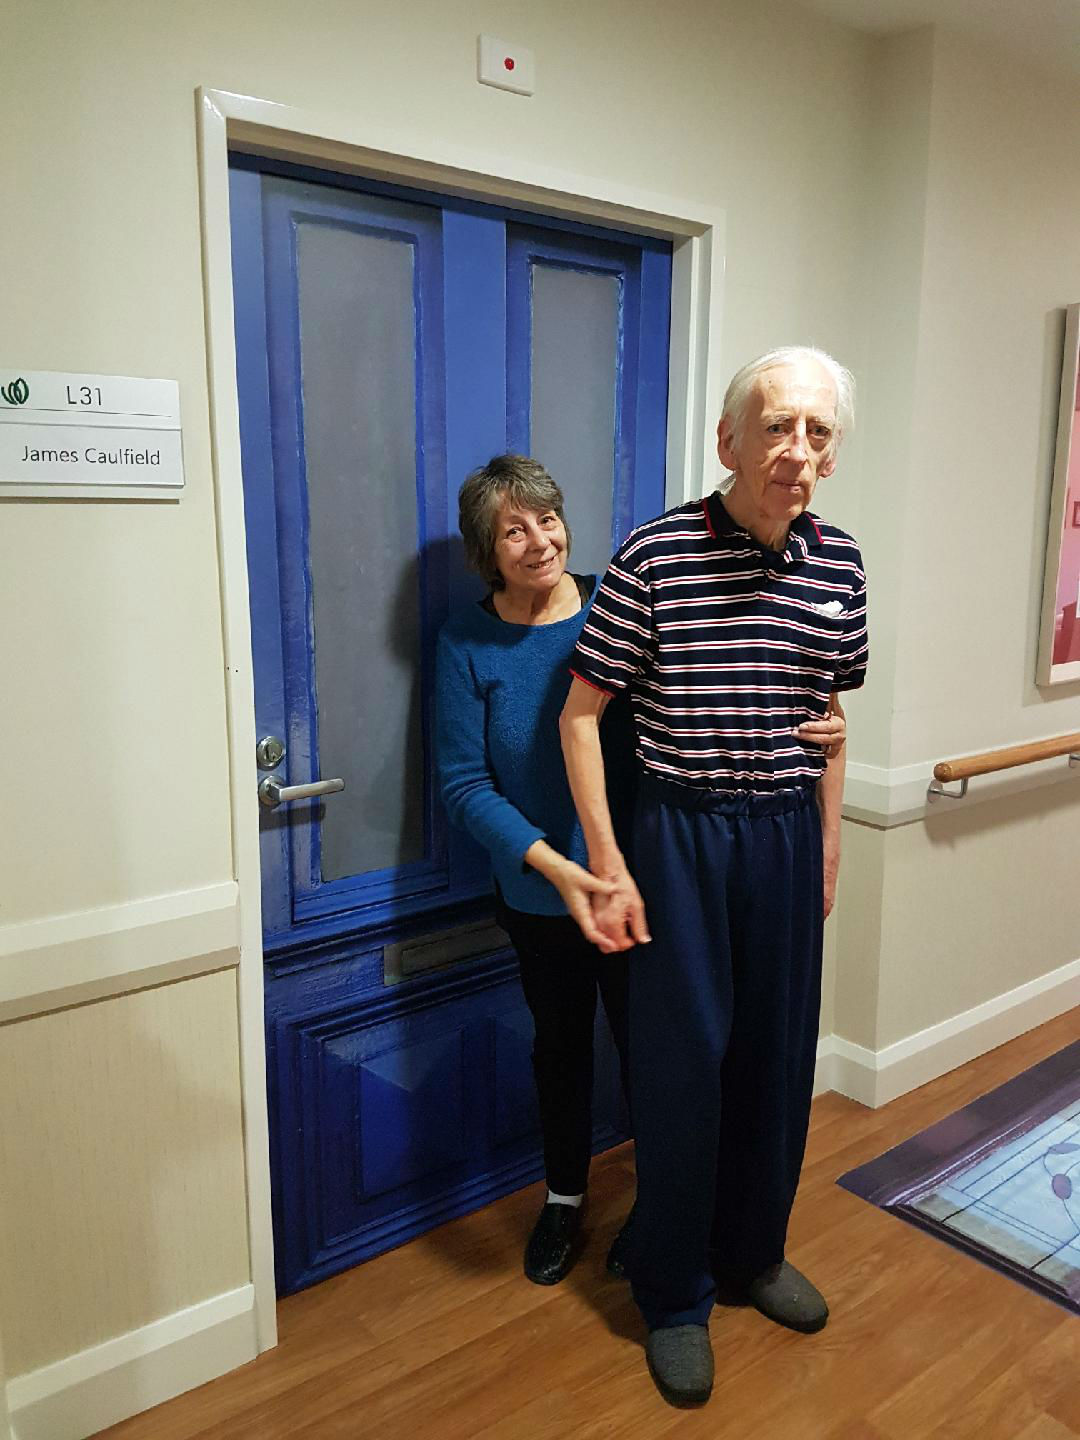 James - Having fun at TLC Aged Care The Heights in Donvale, Victoria, Australia